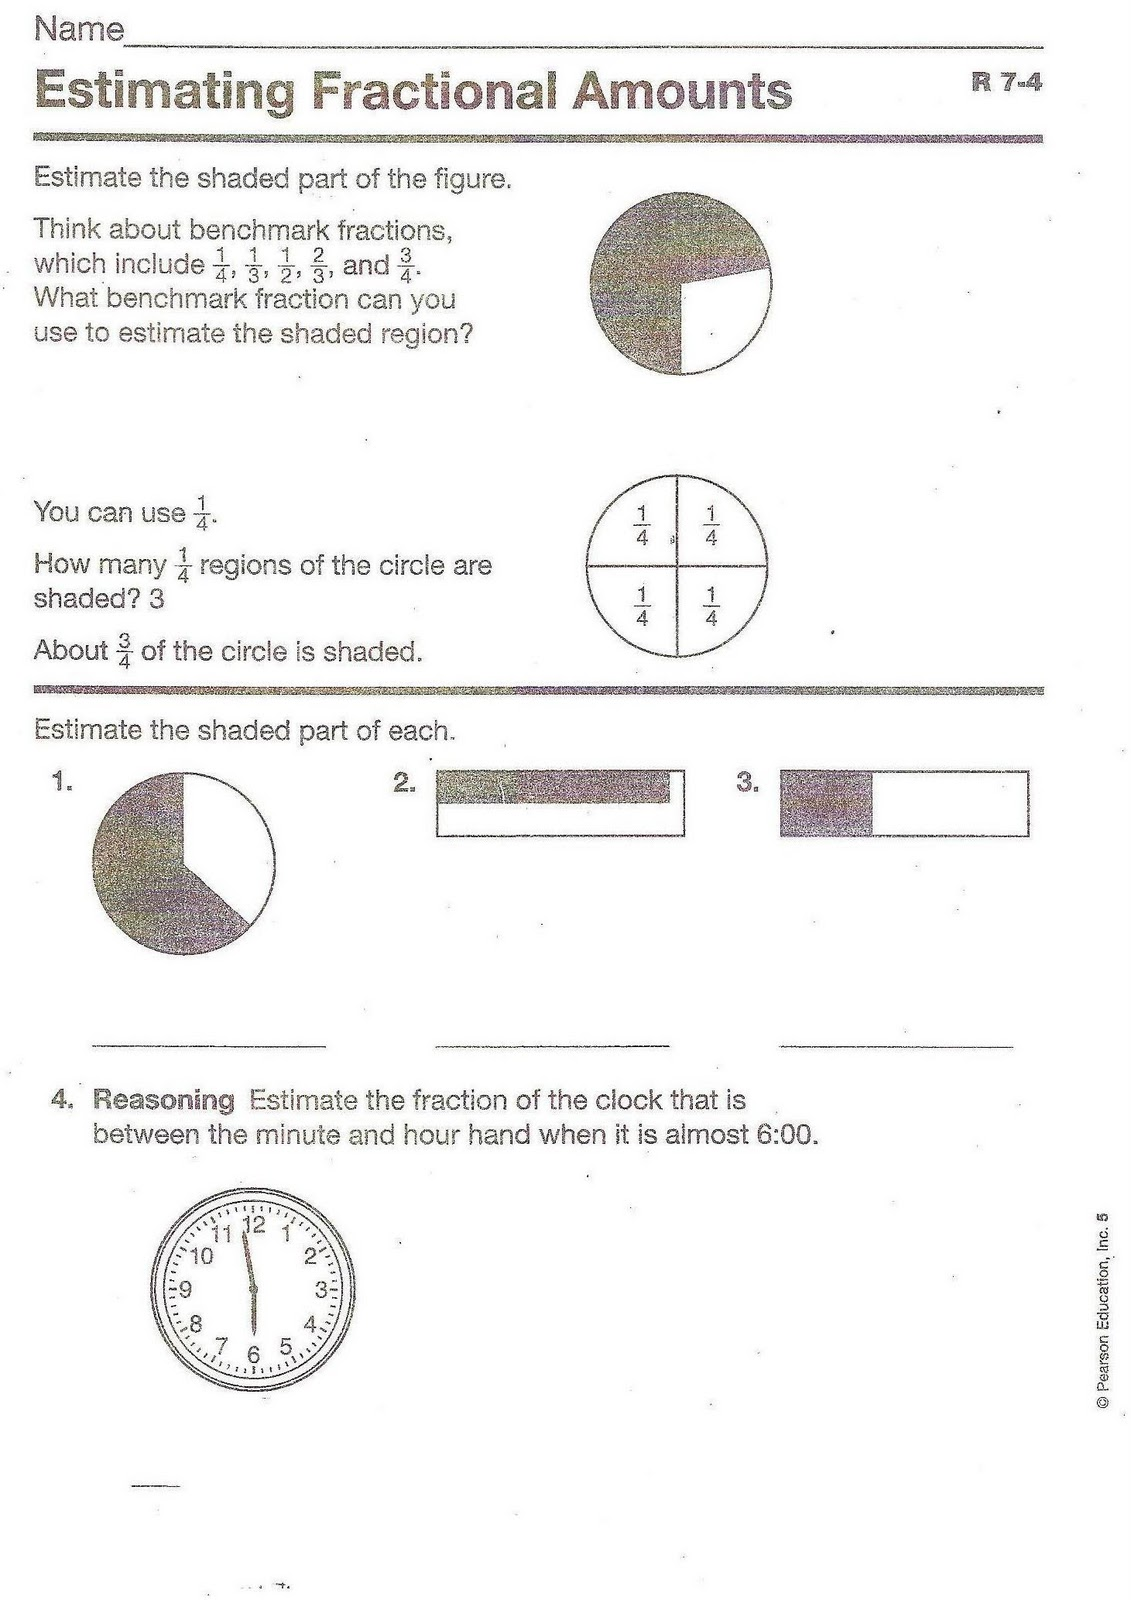 hight resolution of Estimating Fractional Amounts Worksheet Answers   Printable Worksheets and  Activities for Teachers